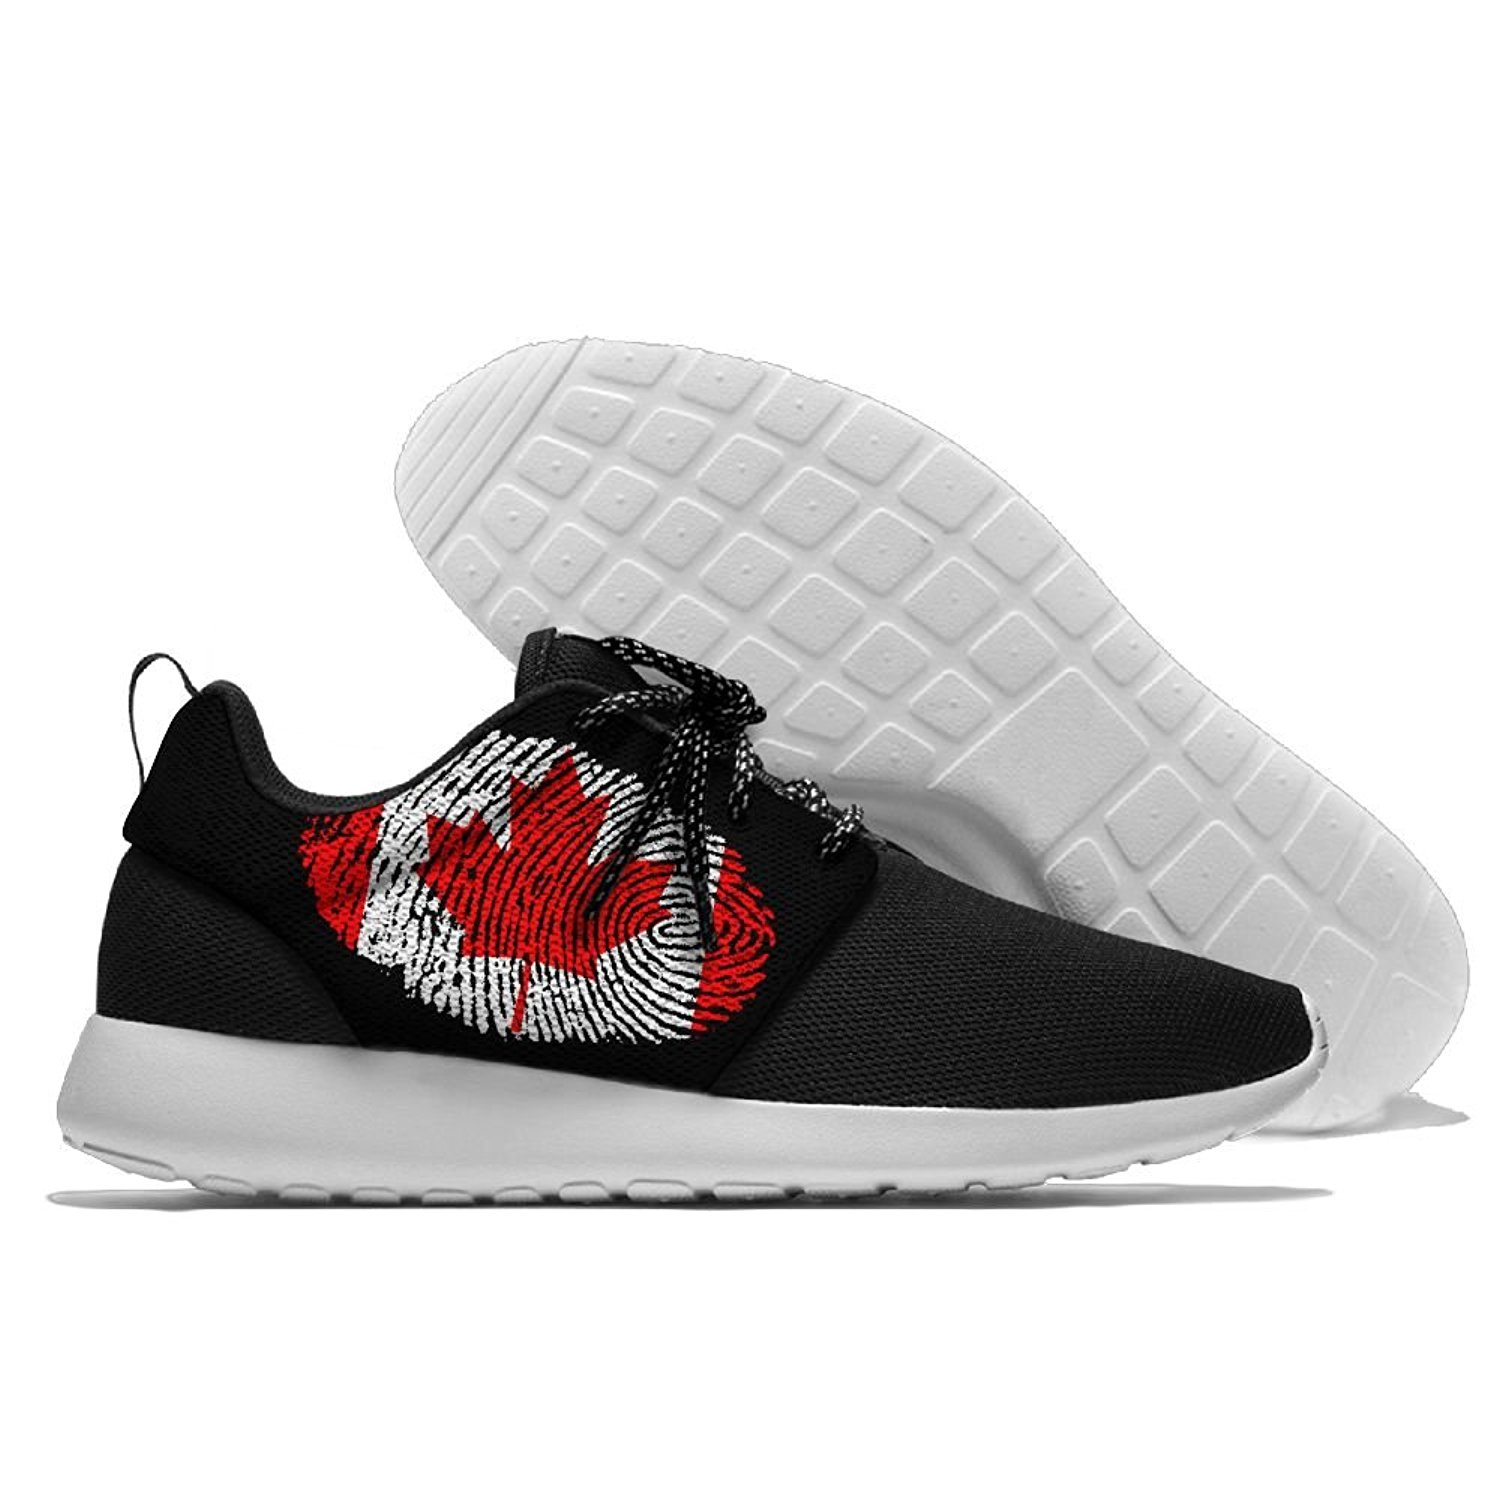 MREIO Flag Childrens Breathable Fly Knit Shoes Outdoor Loafers Sneakers Running Shoes For Girls